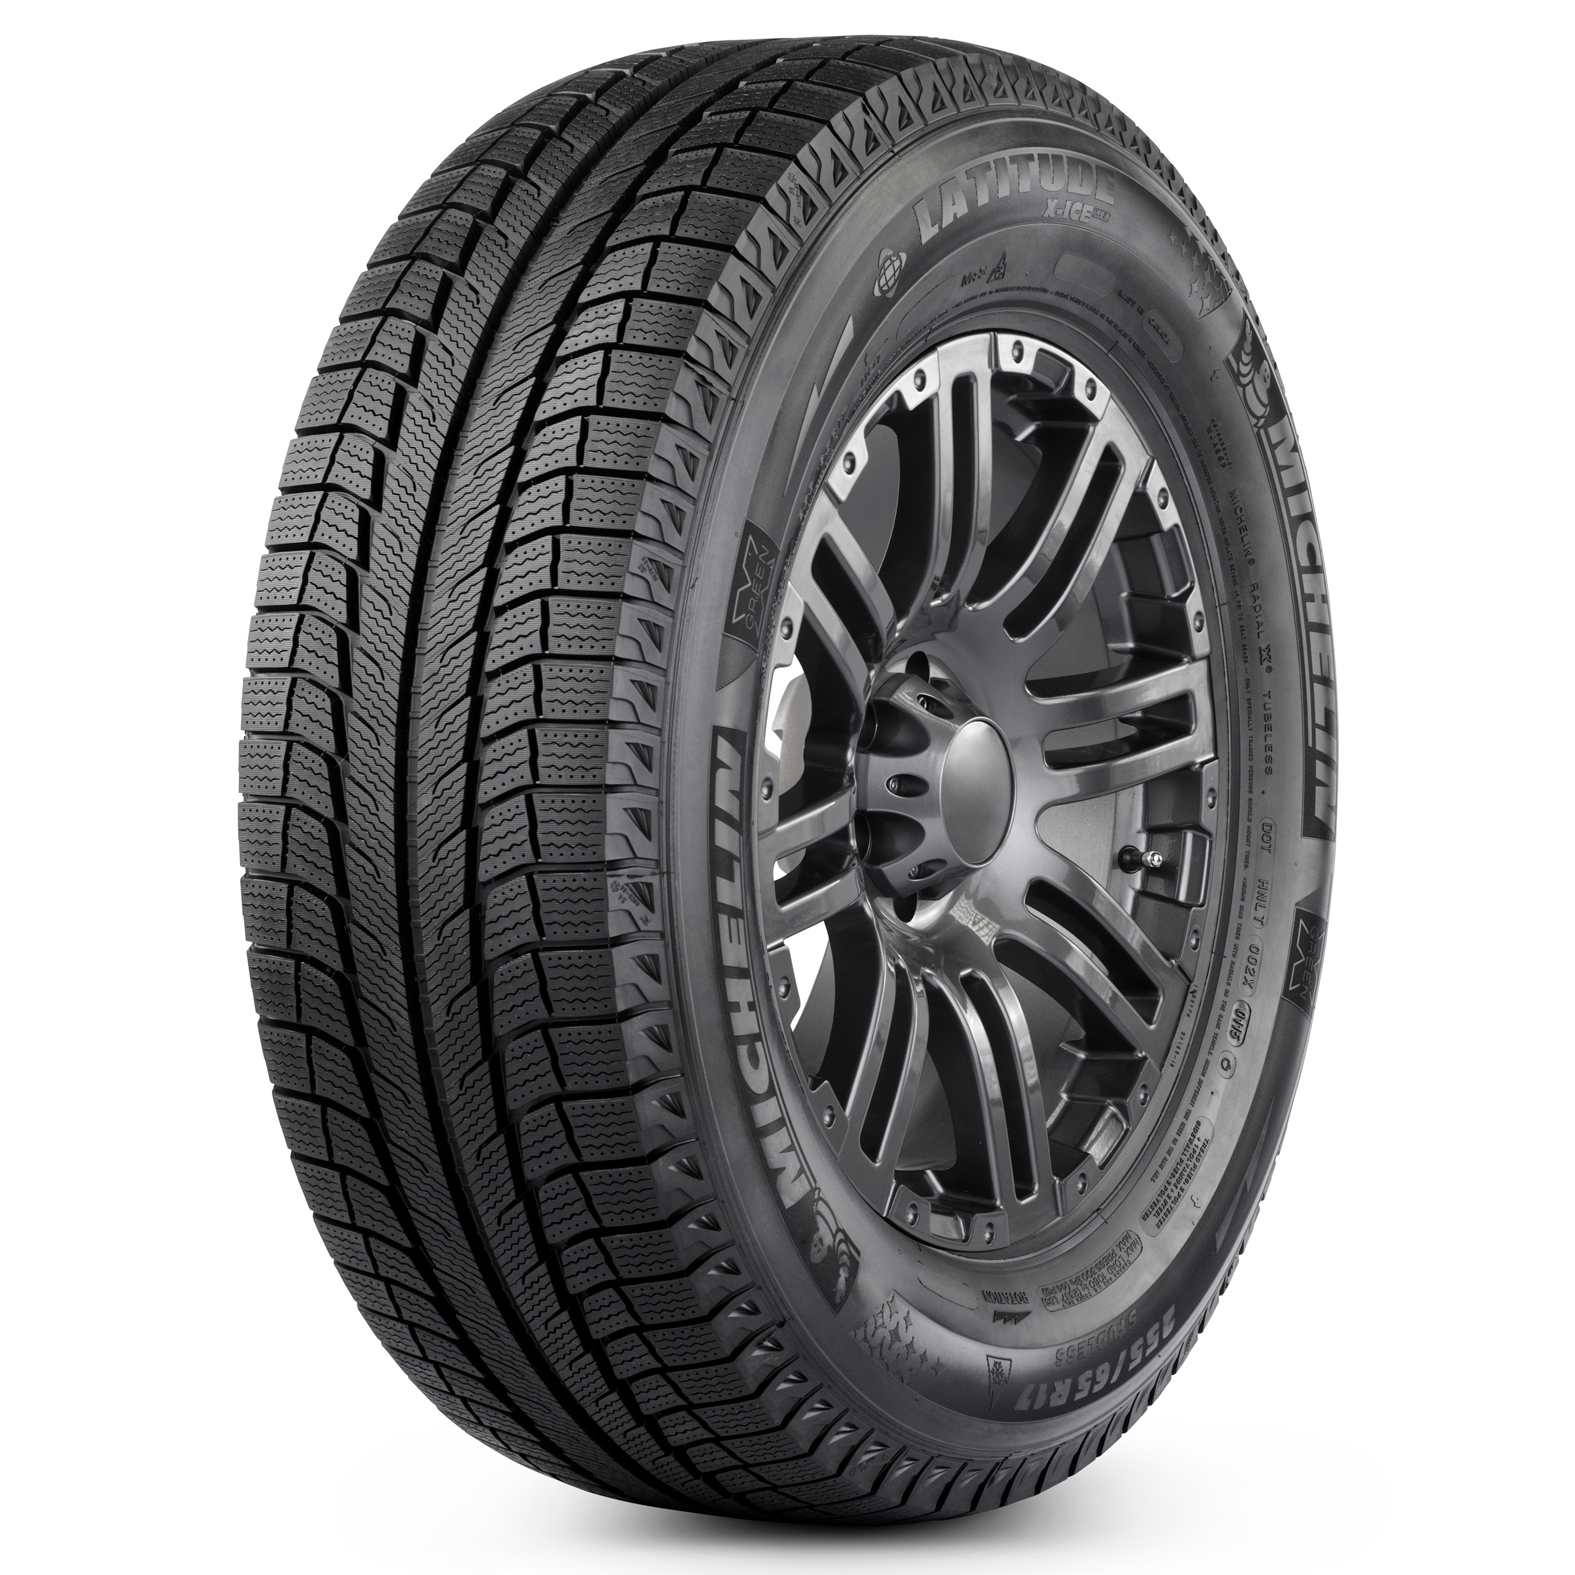 Michelin LATITUDE X-ICE XI2 tire - angle